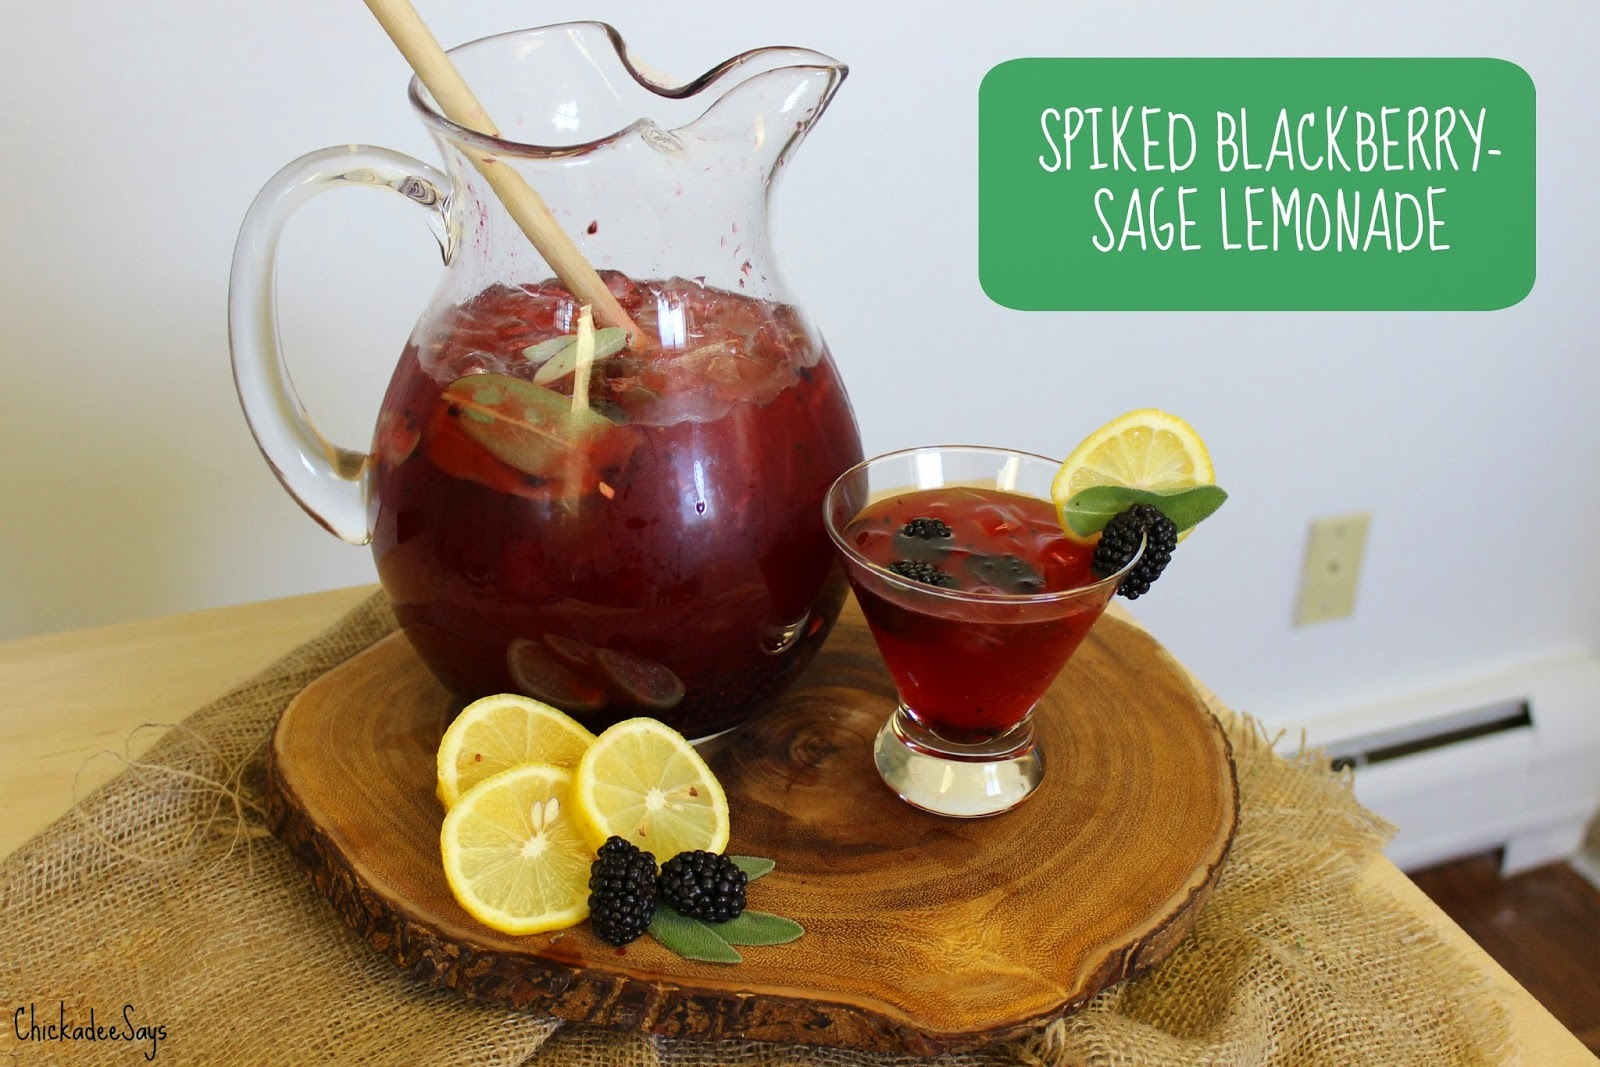 Summer Drink Series: Spiked Blackberry-Sage Lemonade